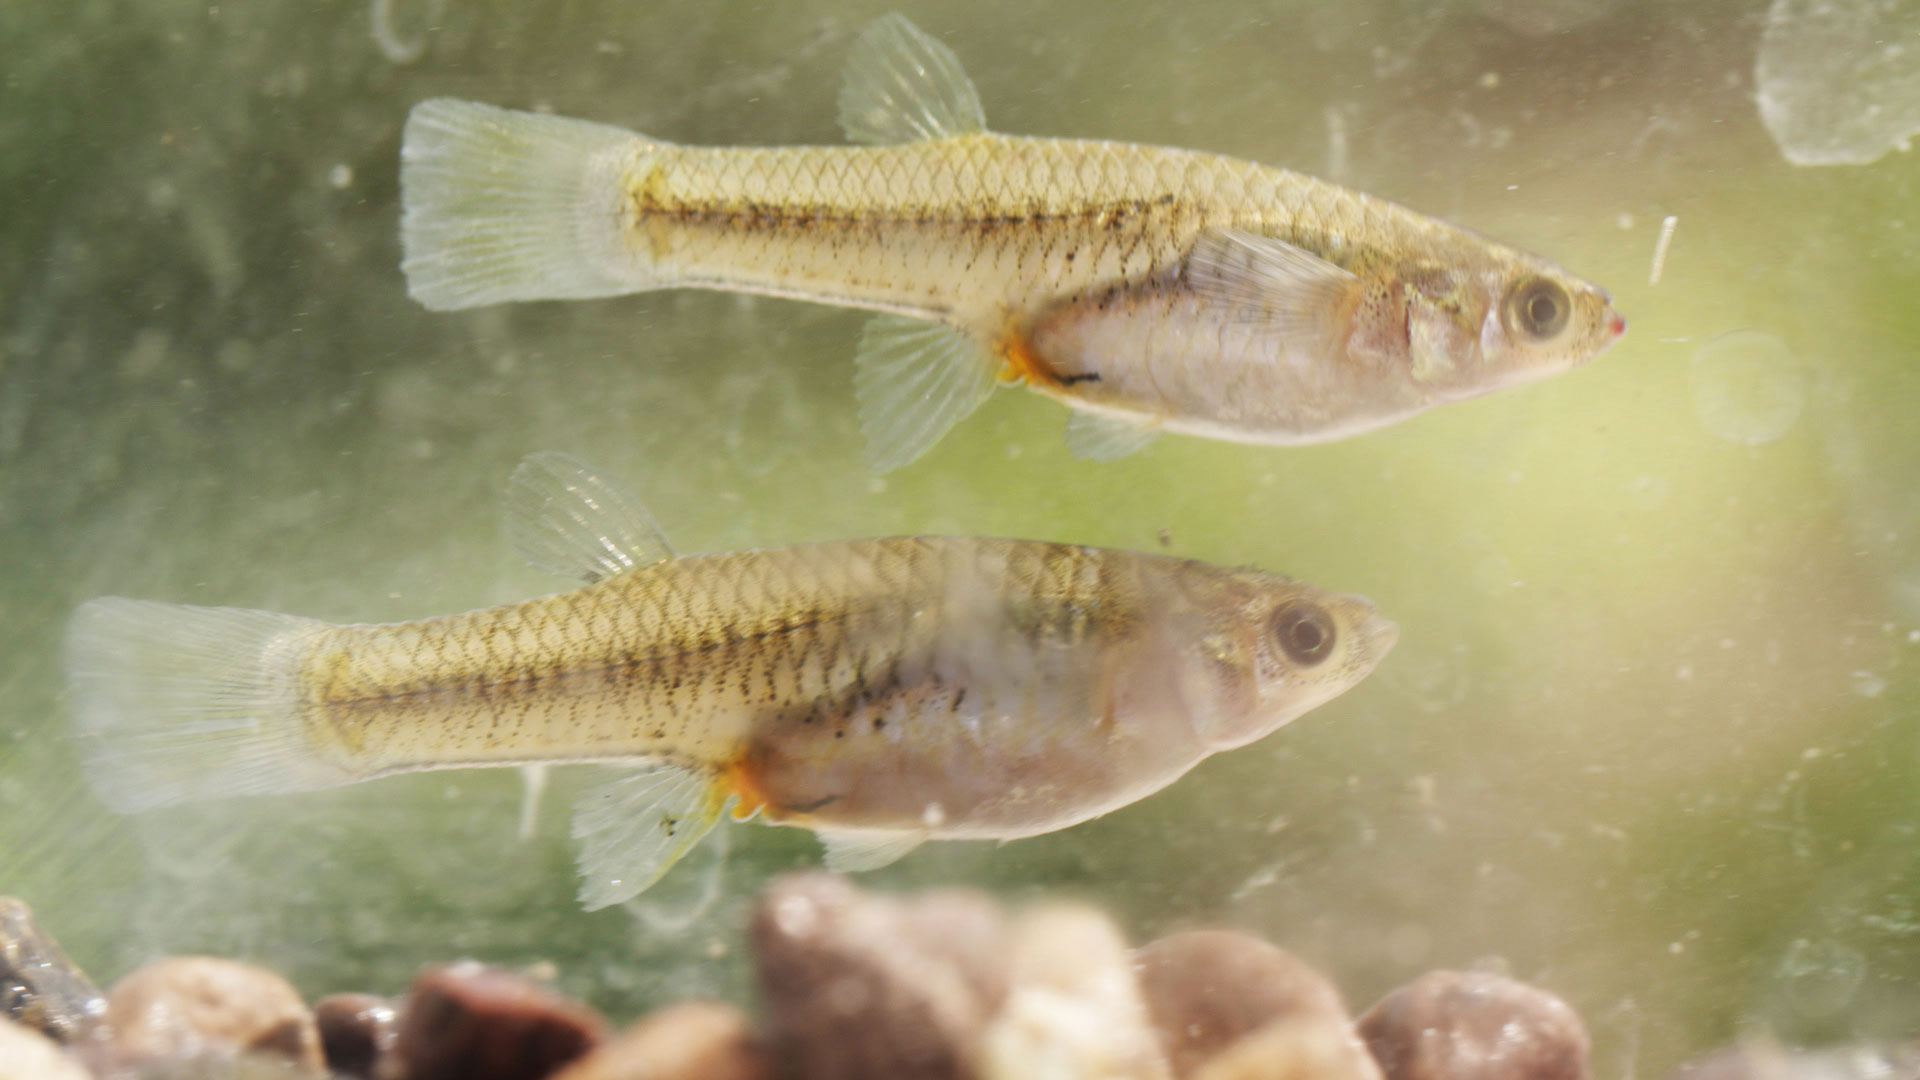 Female Gila topminnows (pictured here) grow to approximately 2 inches and males are about half as big.